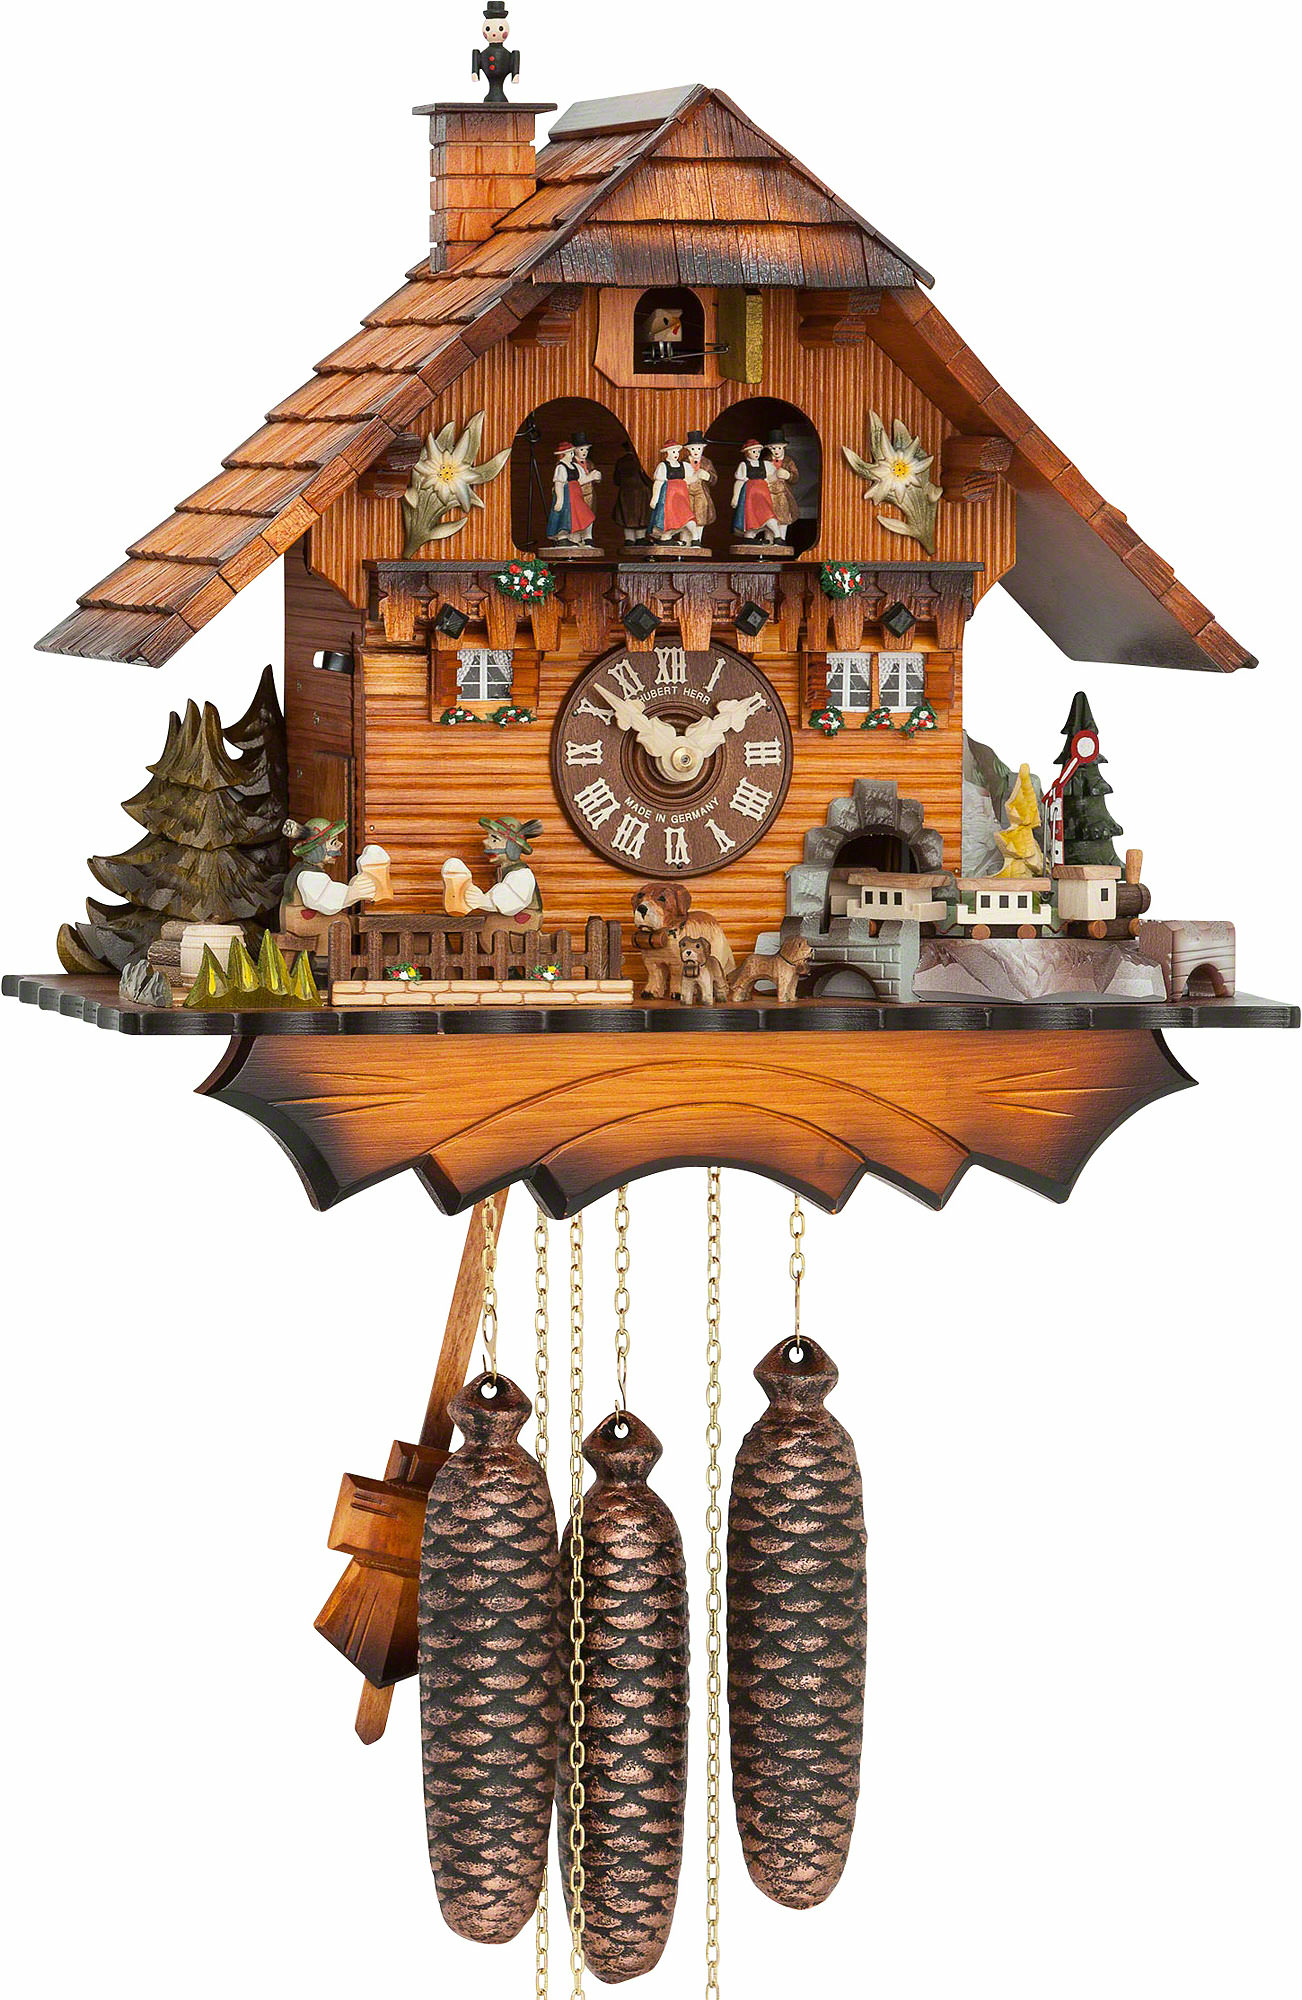 Cuckoo Clock 8 Day Movement Chalet Style 36cm By Hubert